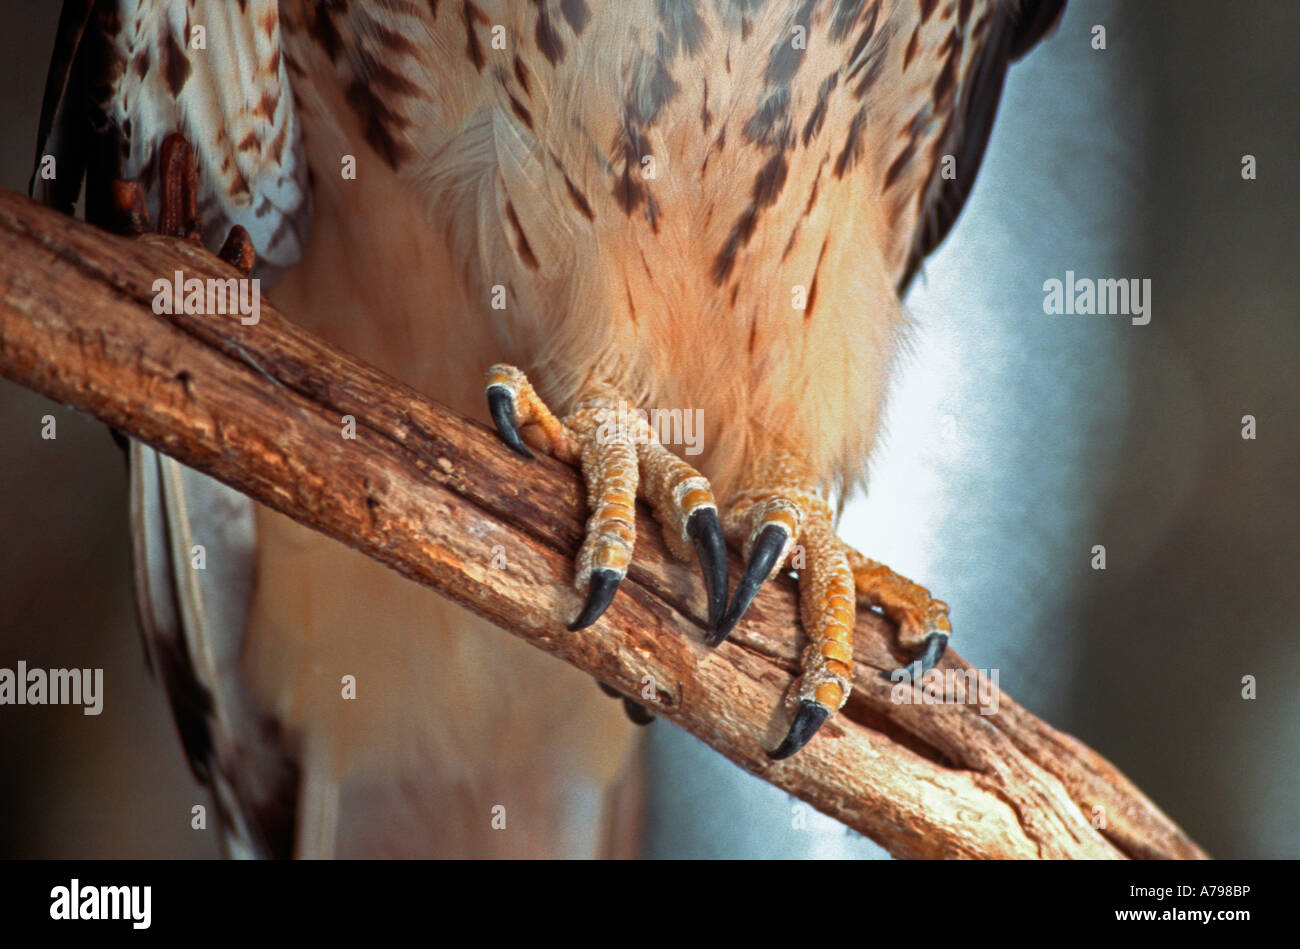 Red-tailed Hawk adult Buteo jamaicensis close up of feet showing powerful talons - Stock Image